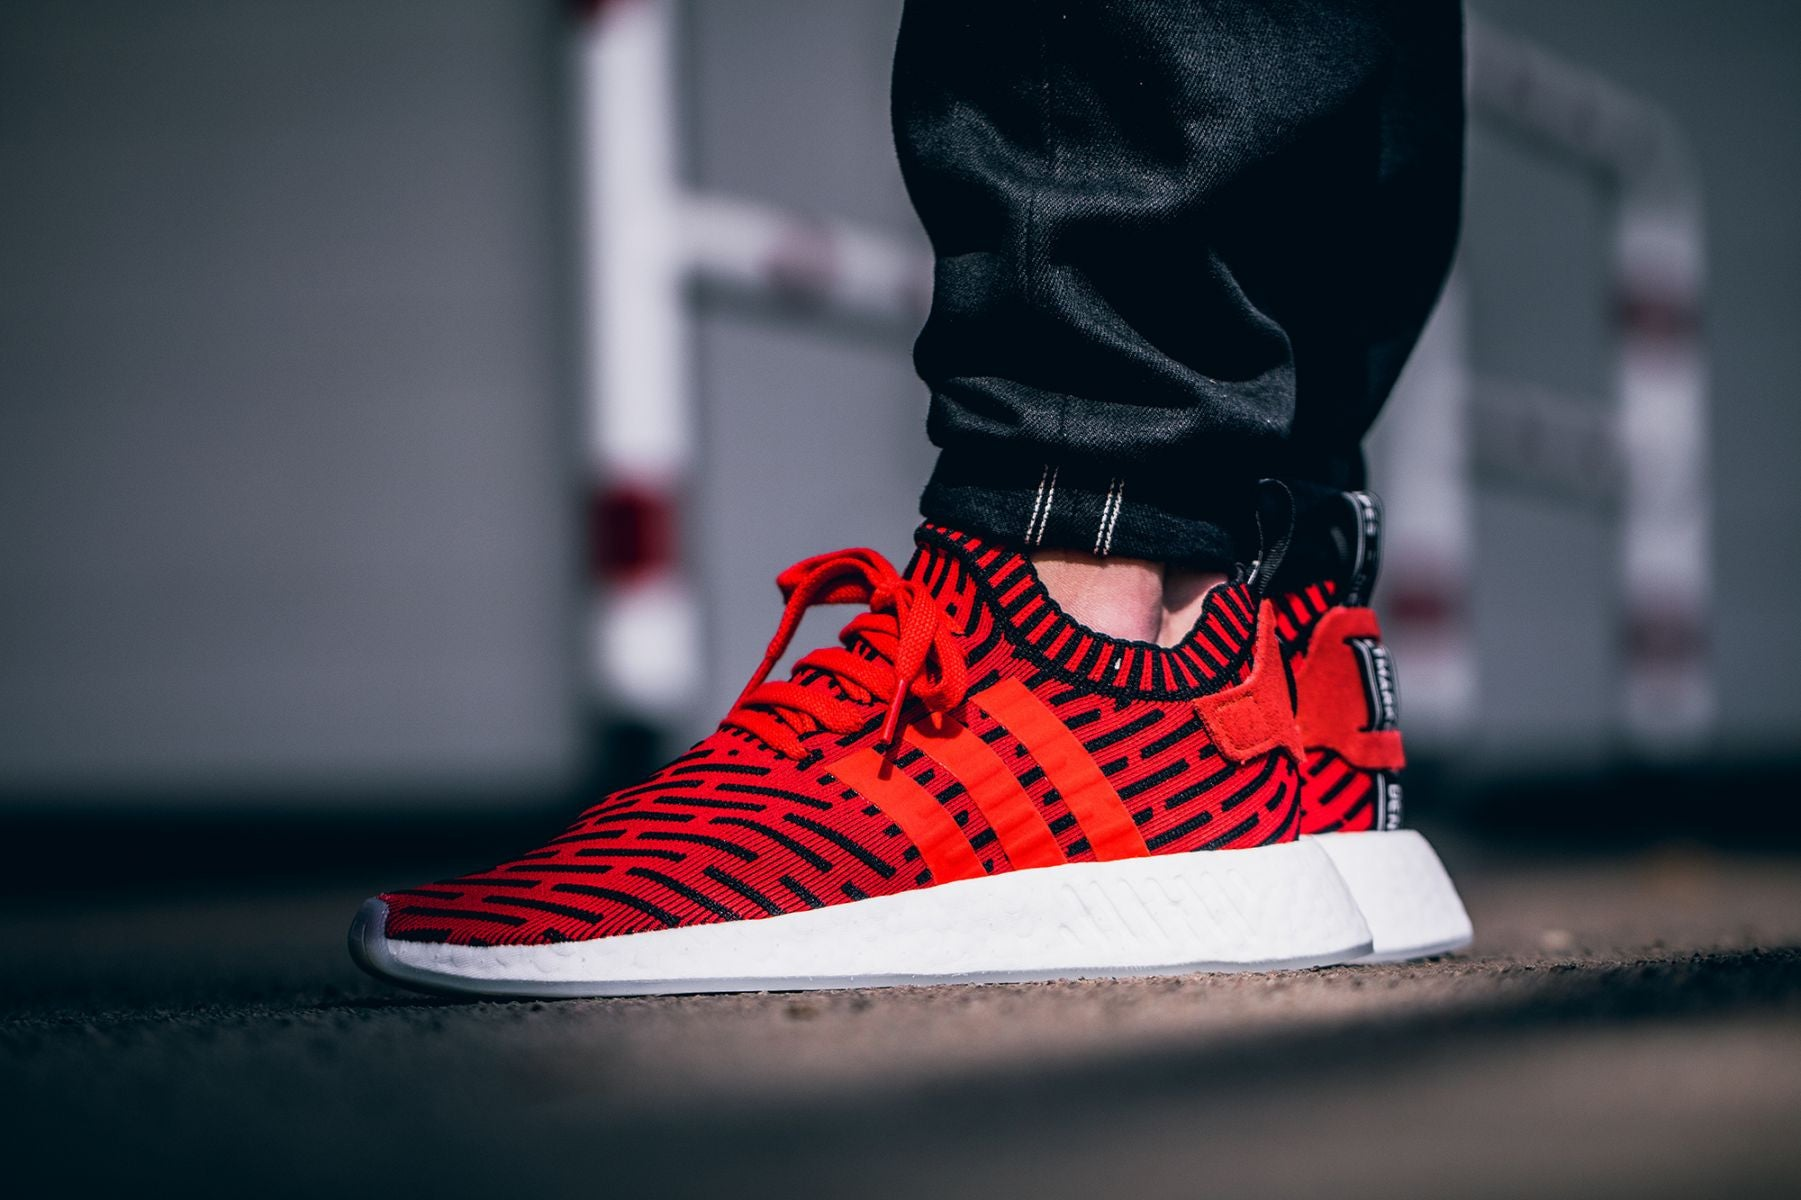 e092b4434f73d adidas nmd r2 primeknit white core red on feet